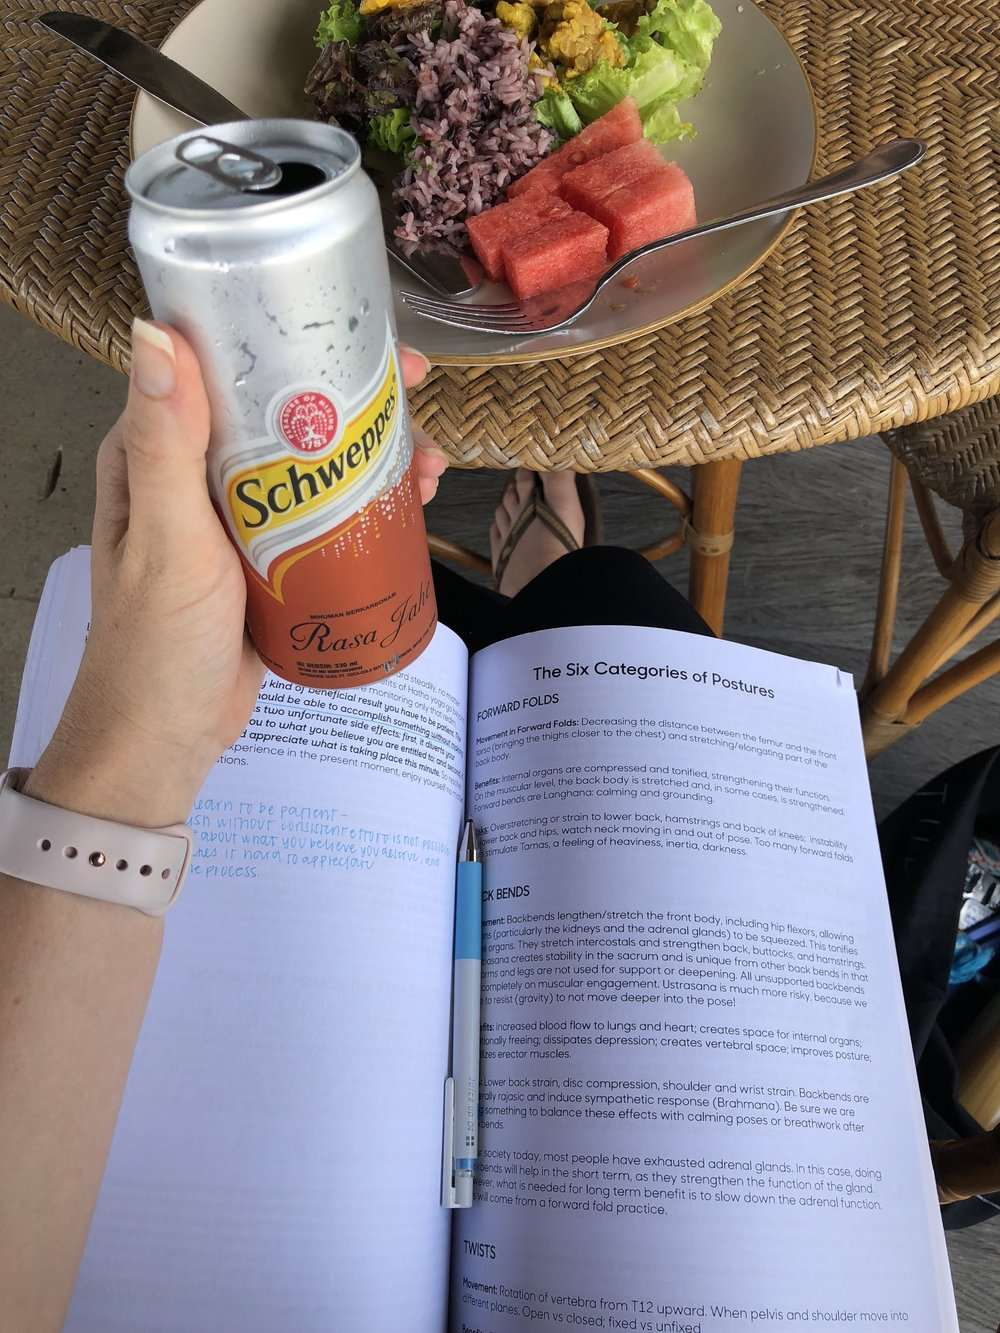 lunch studying + bali ginger ale for my stomach!